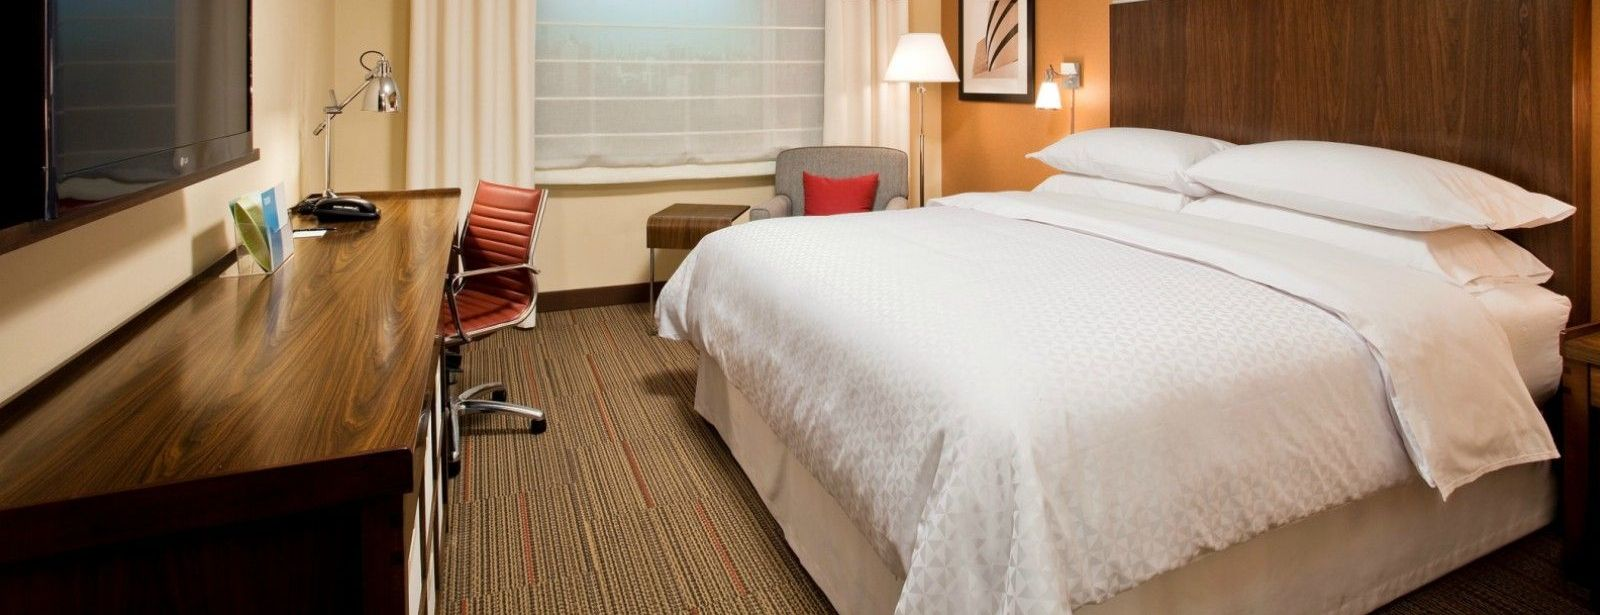 Moncton Accommodations - Accessible Room